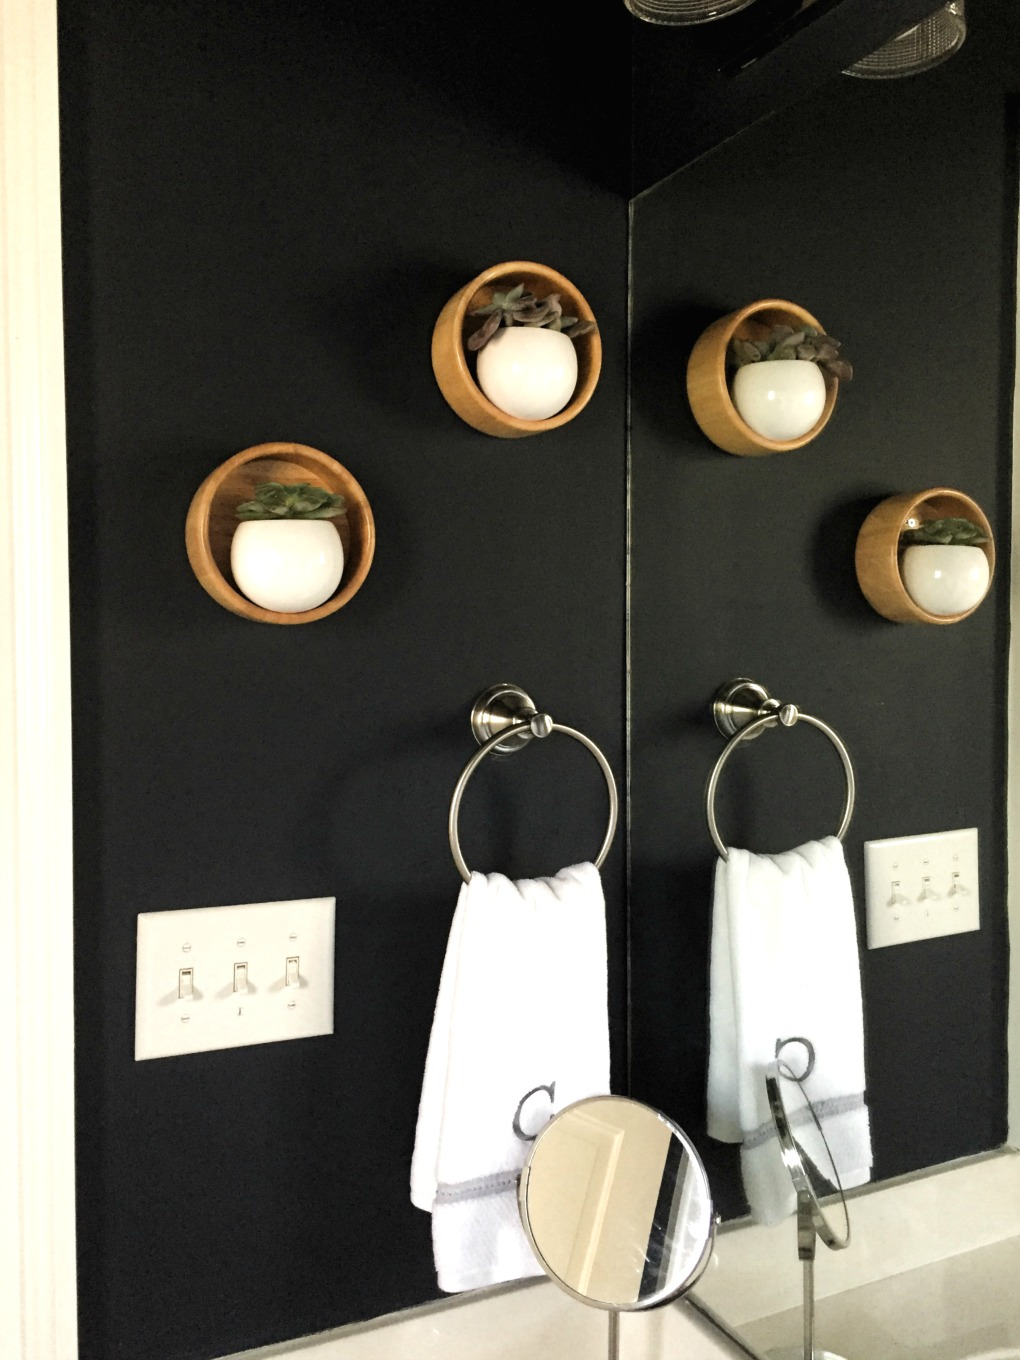 Guest bathroom makeover reveal - DIY wooden wall planters - thediybungalow.com